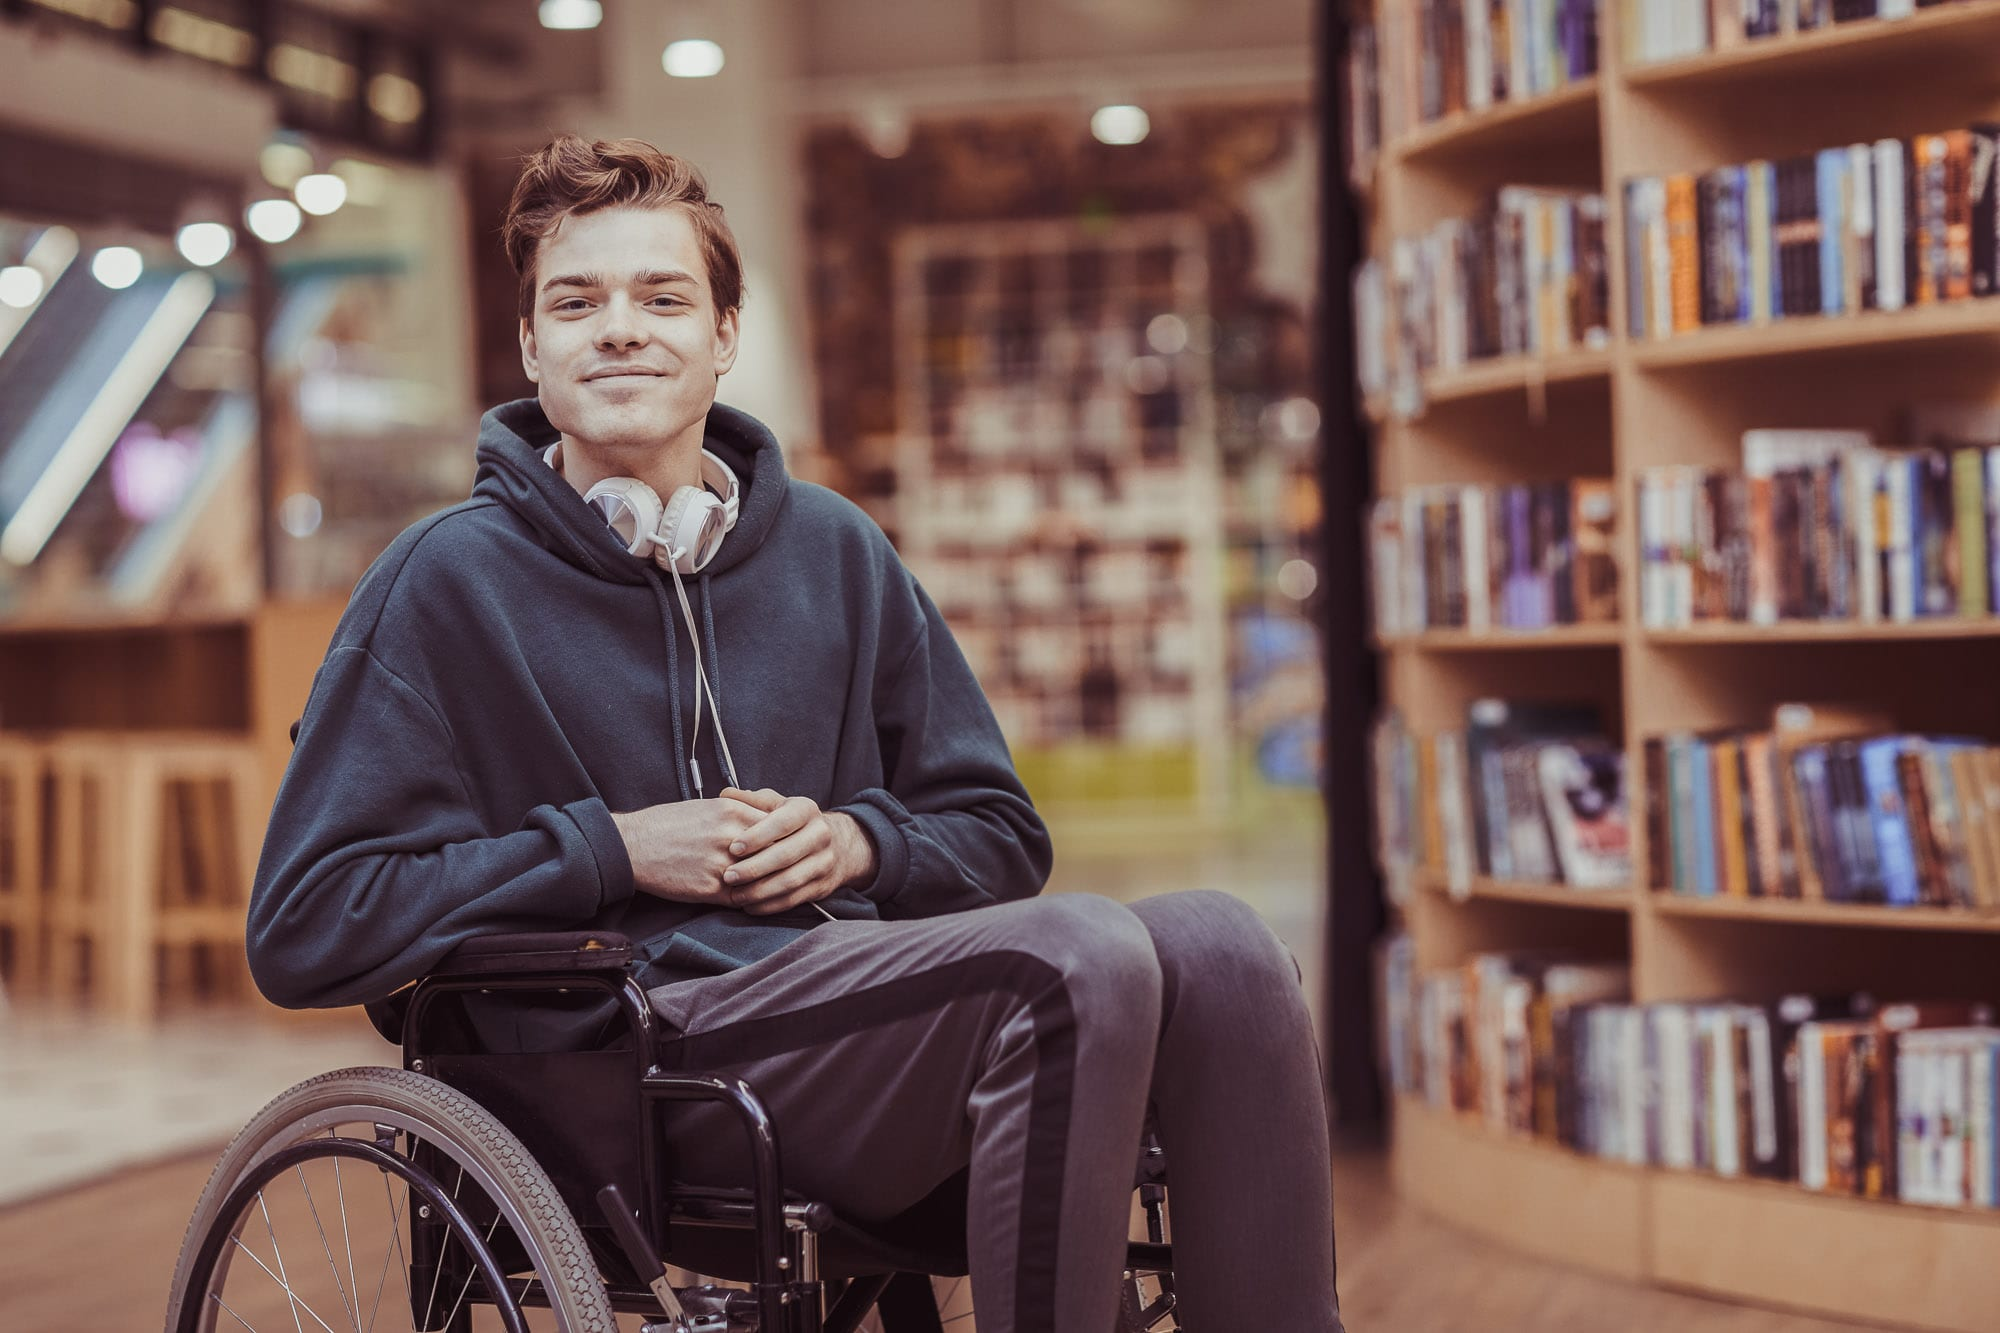 University student in a wheelchair in a library